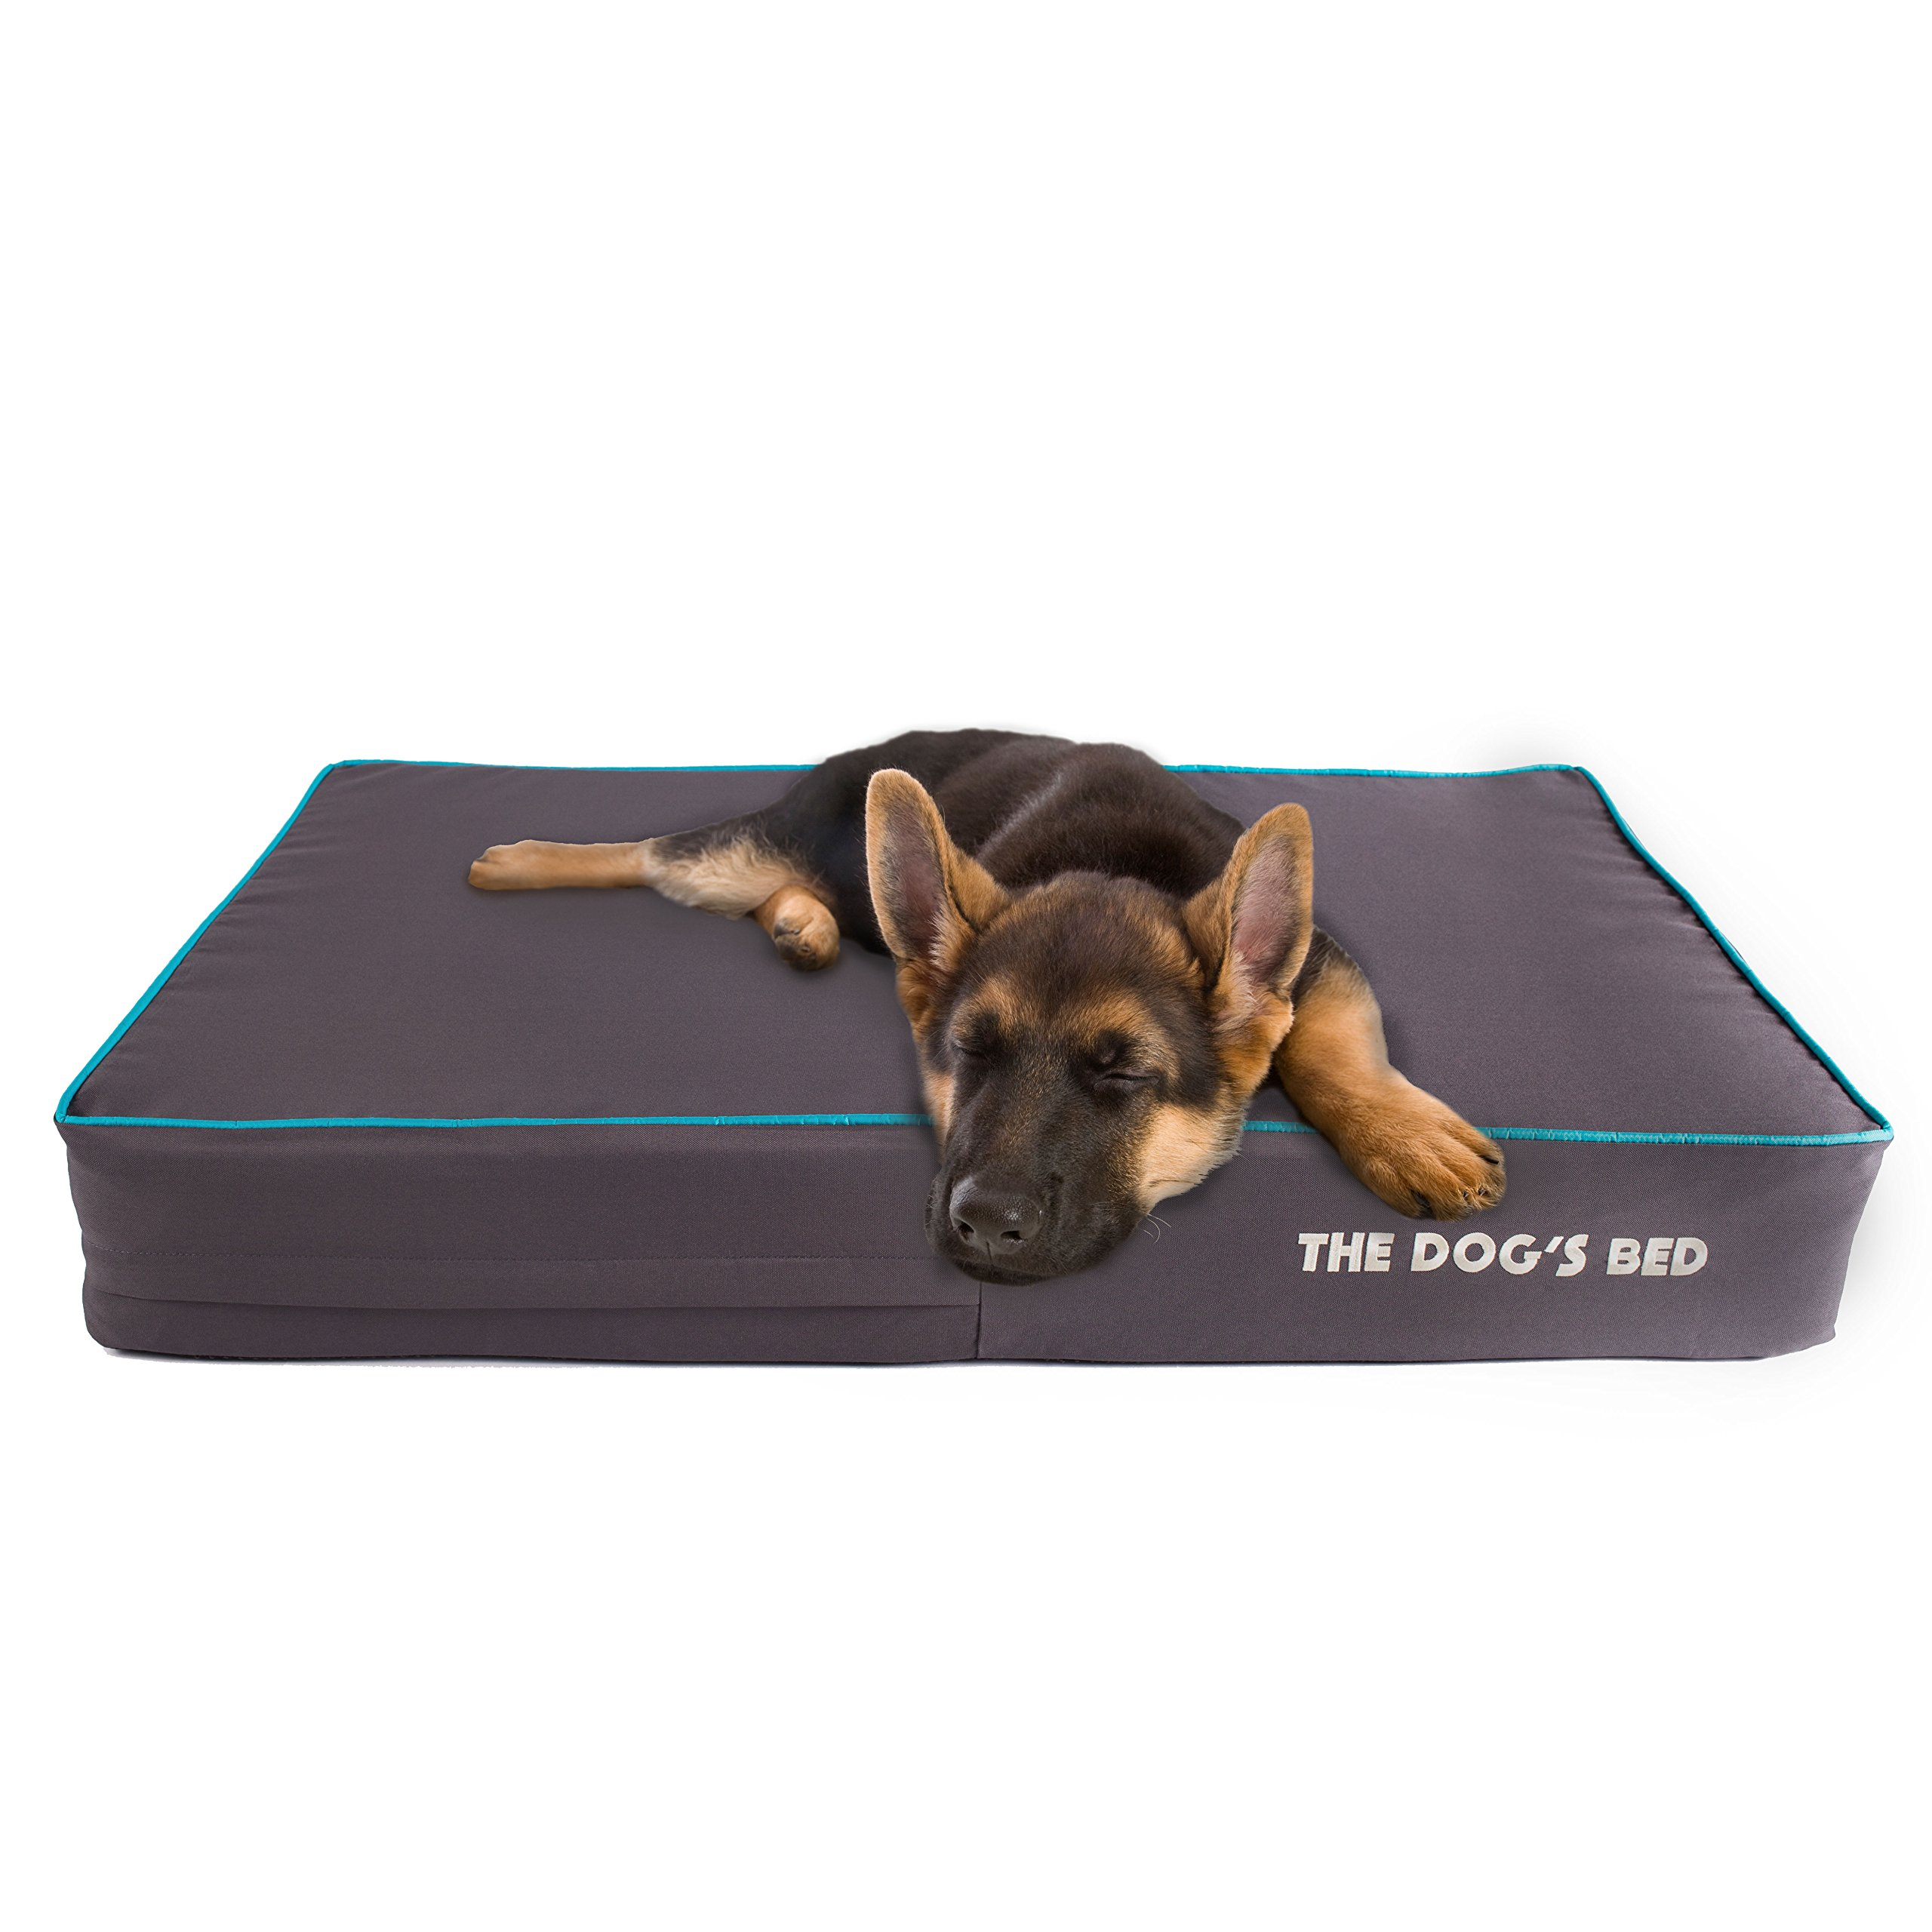 The Dog's Bed, Premium Plush Orthopedic Waterproof Memory Foam Dog Beds, 5 Sizes/7 Colors: Eases Pet Arthritis, Hip Dysplasia & Post Op Pain, Quality Therapeutic & Supportive Bed, Washable Covers